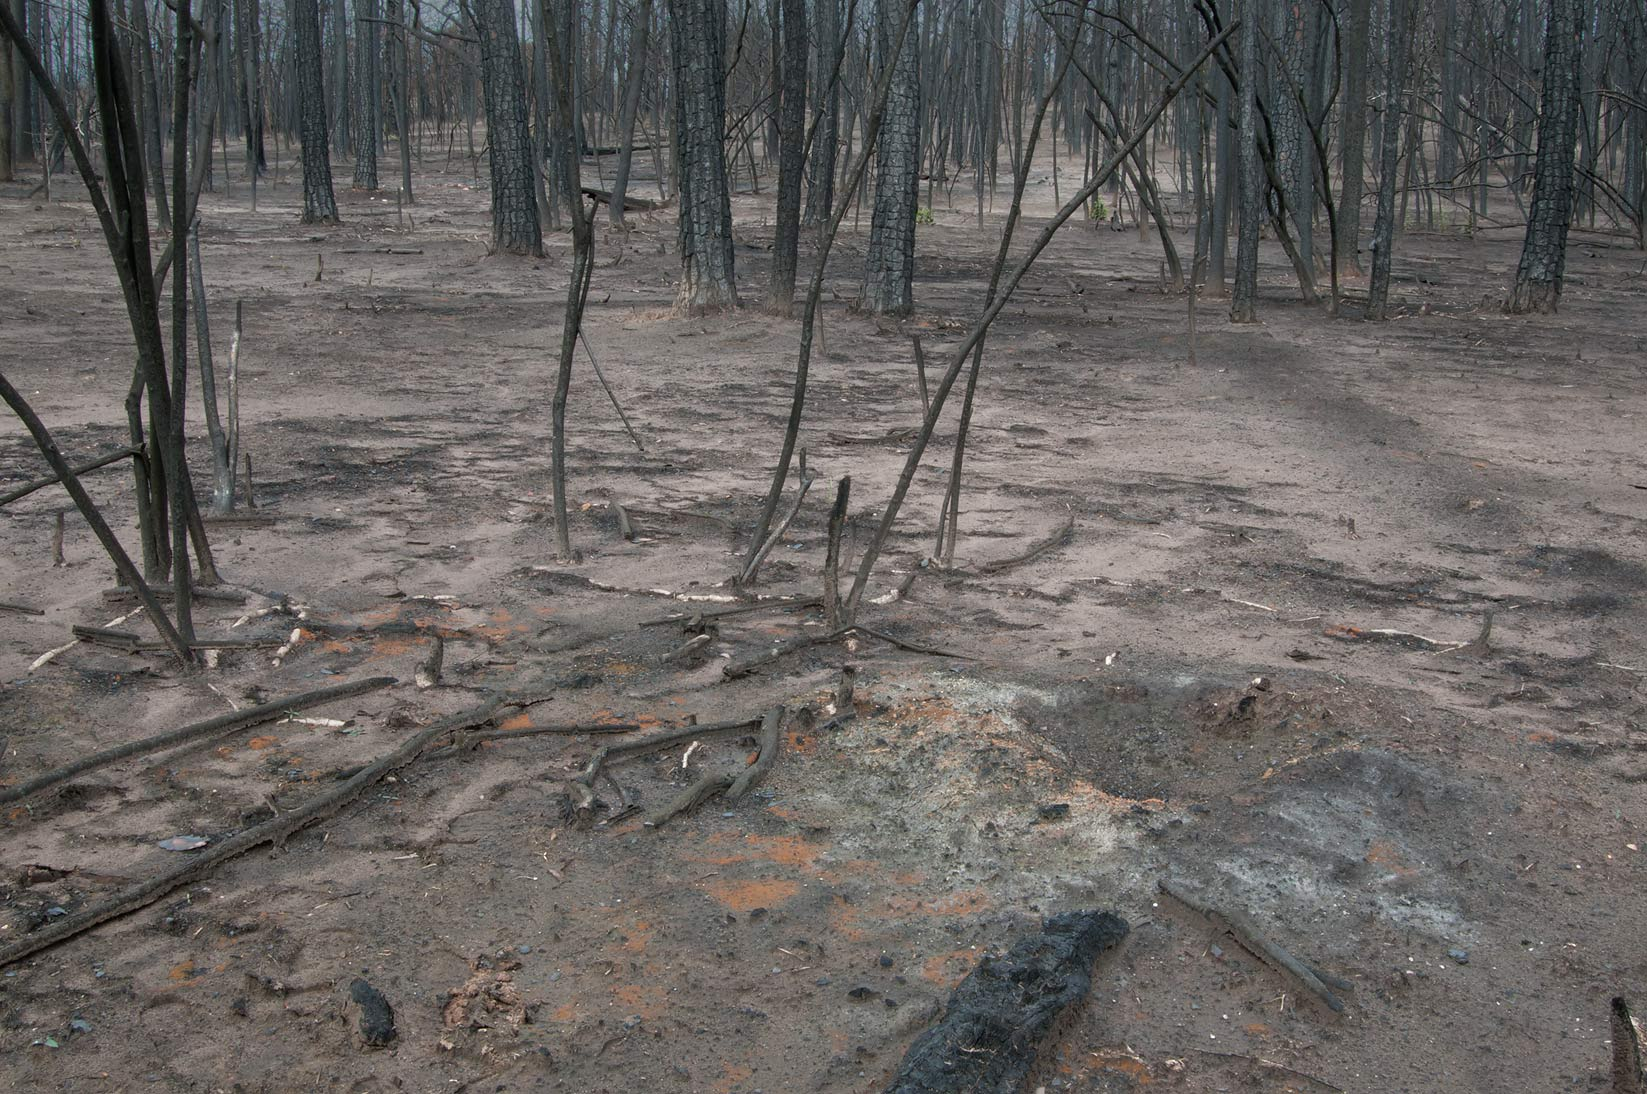 Burnt bushes and ash pit in Bastrop State Park. Bastrop, Texas